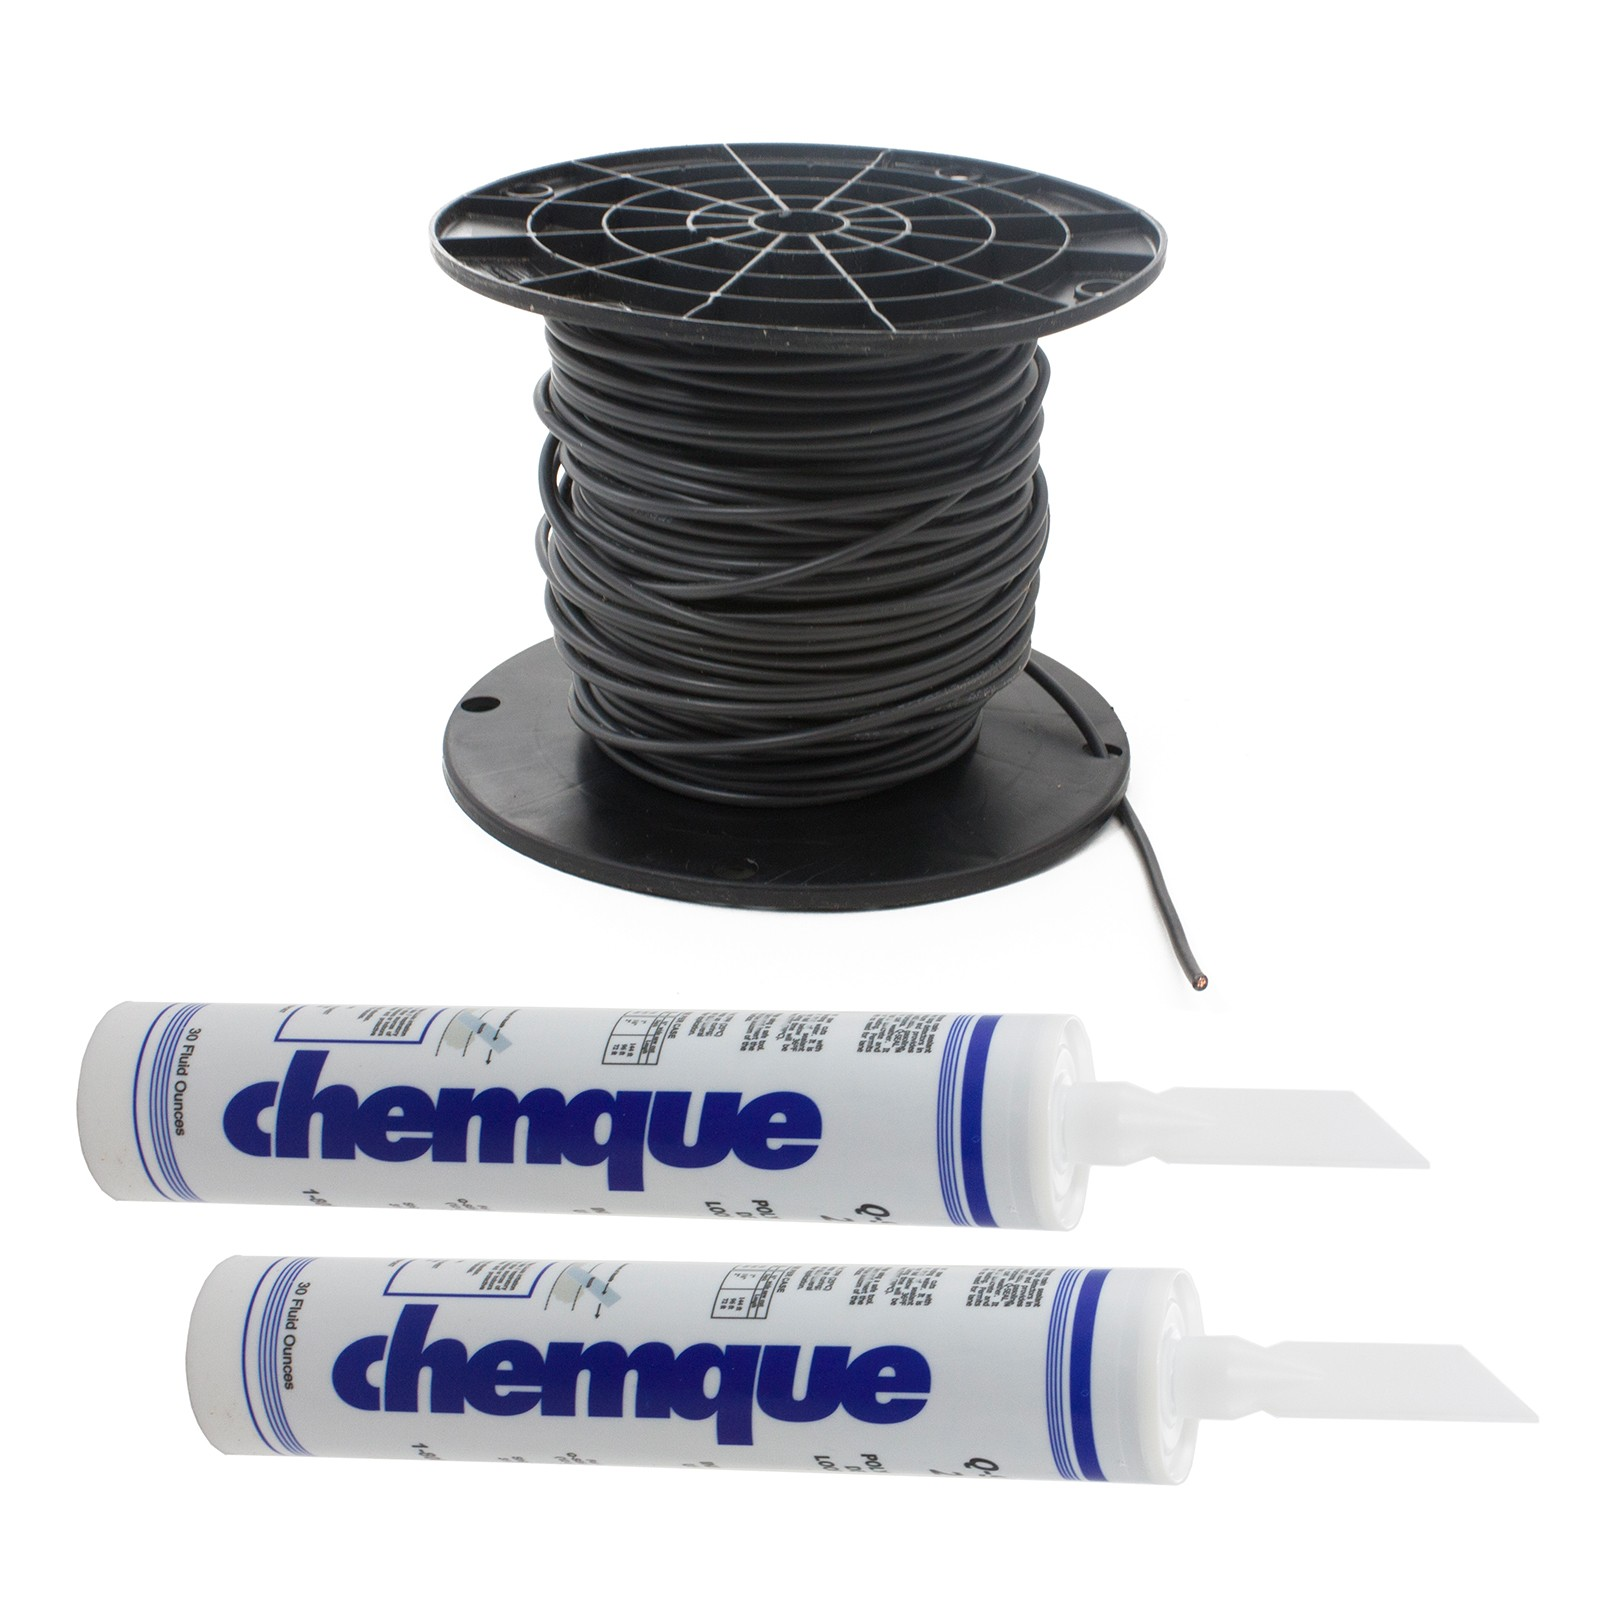 Linear 2510-222 Loop Wire Kit with Two Tubes of Sealant | Linear PRO ...